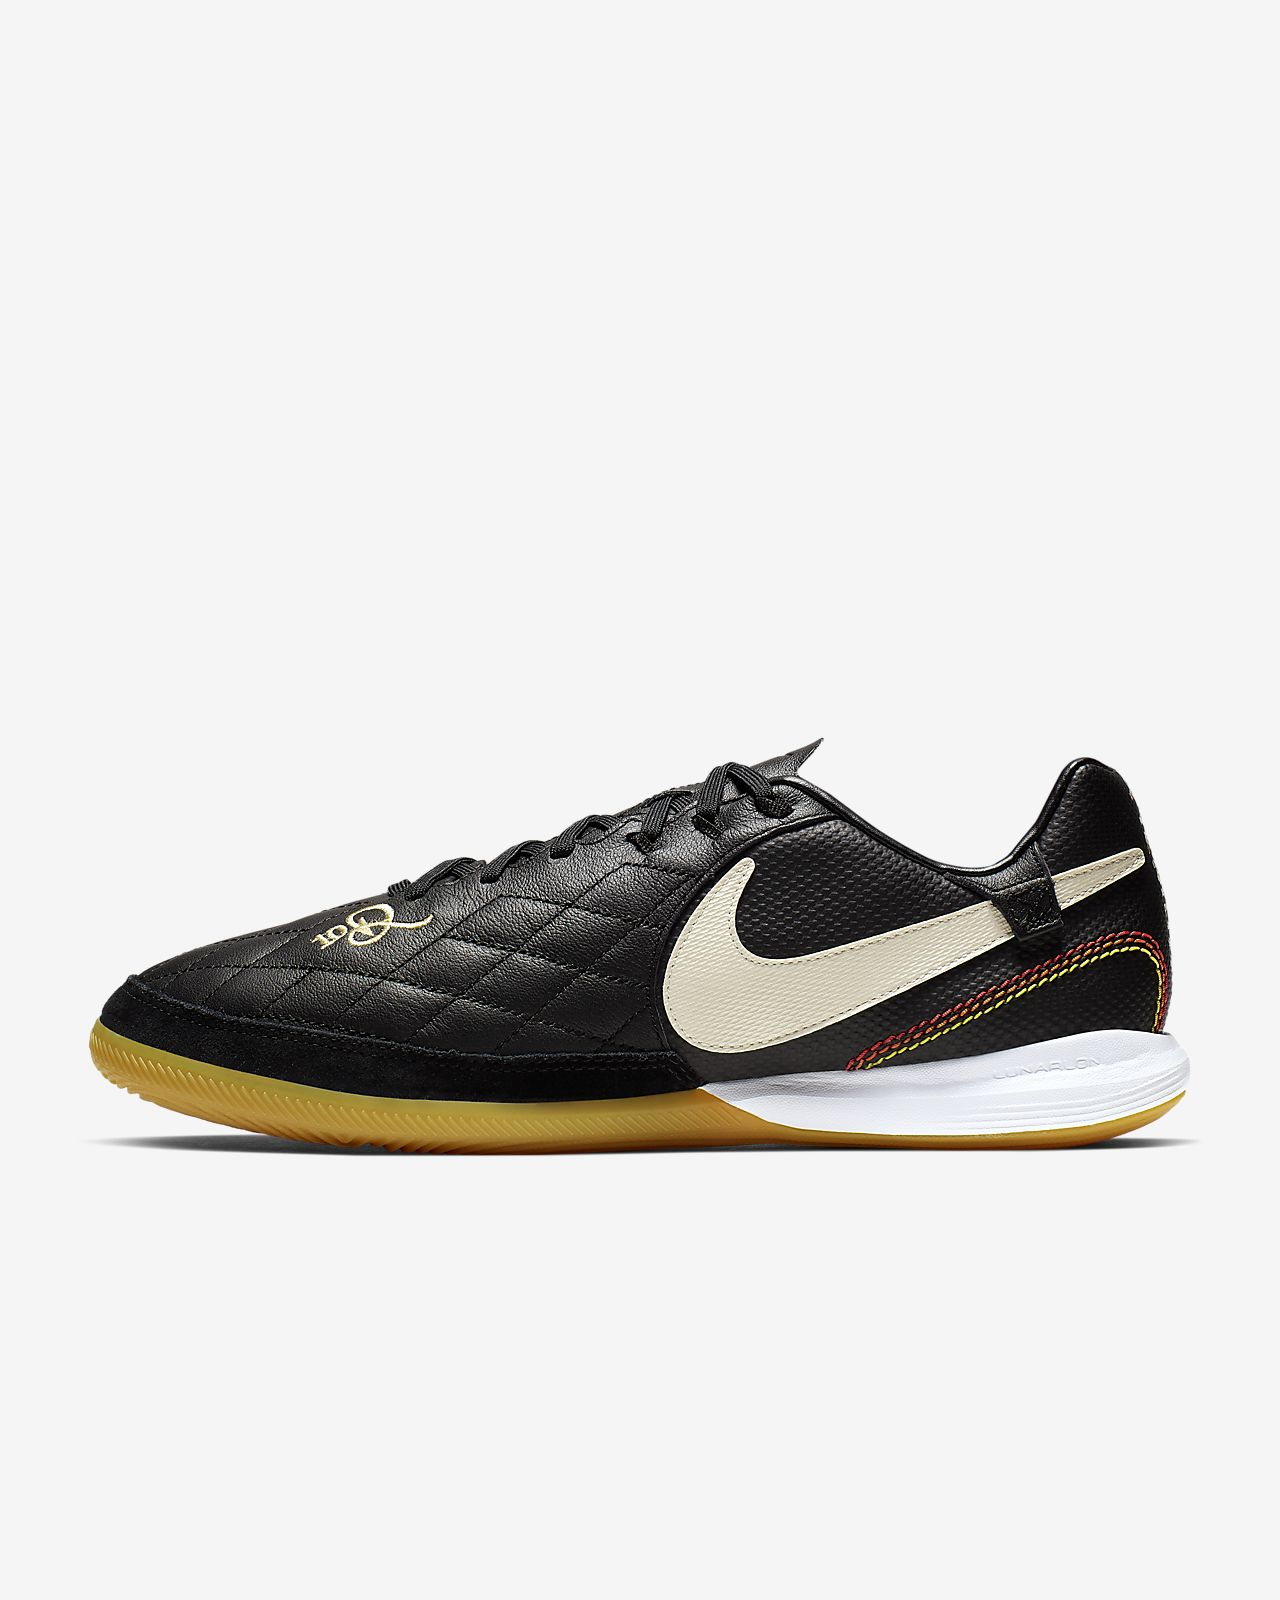 Nike TiempoX Lunar Legend VII Pro 10R Indoor/Court Football Shoe